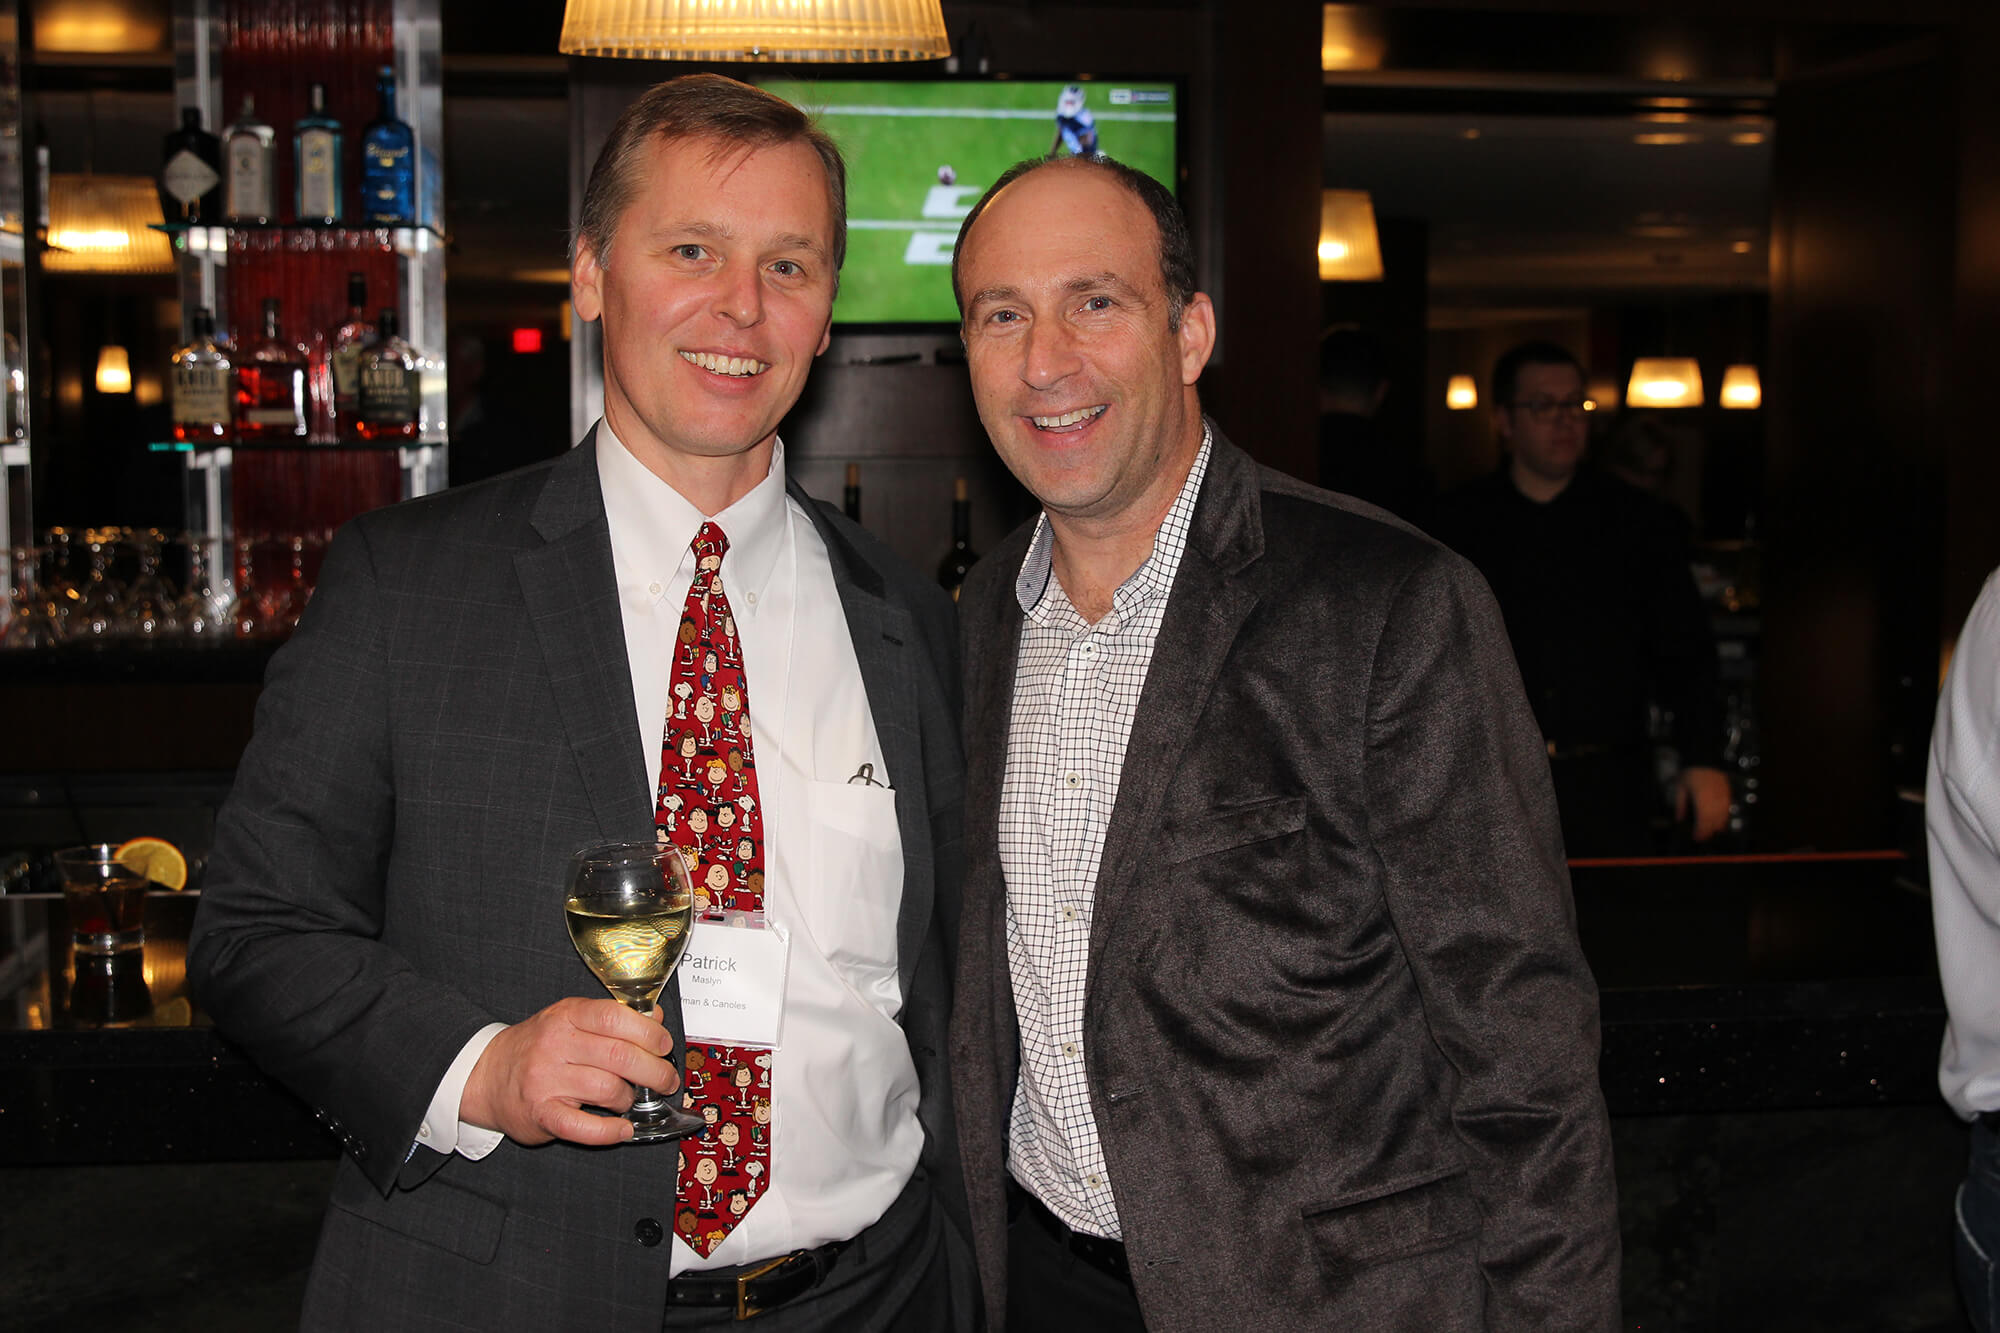 SMB Franchise Advisors President and CEO Steve Beagelman smiles for the camera with party guest and friend Patrick Maslin.